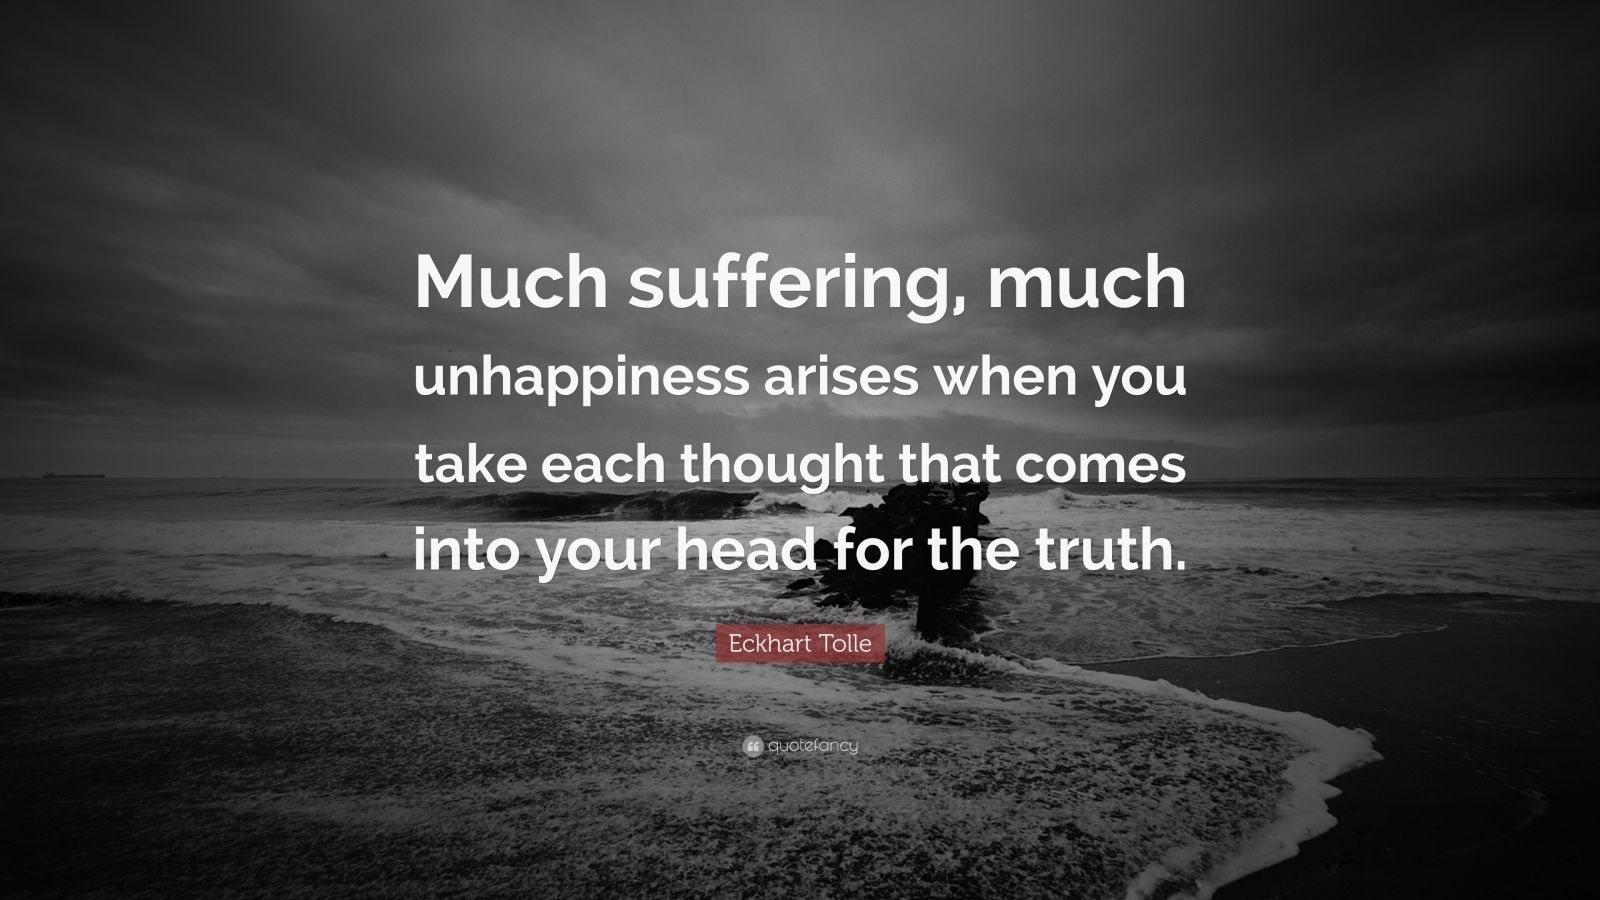 """Eckhart Tolle Quote: """"Much suffering, much unhappiness arises when you take each thought that comes into your head for the truth."""""""